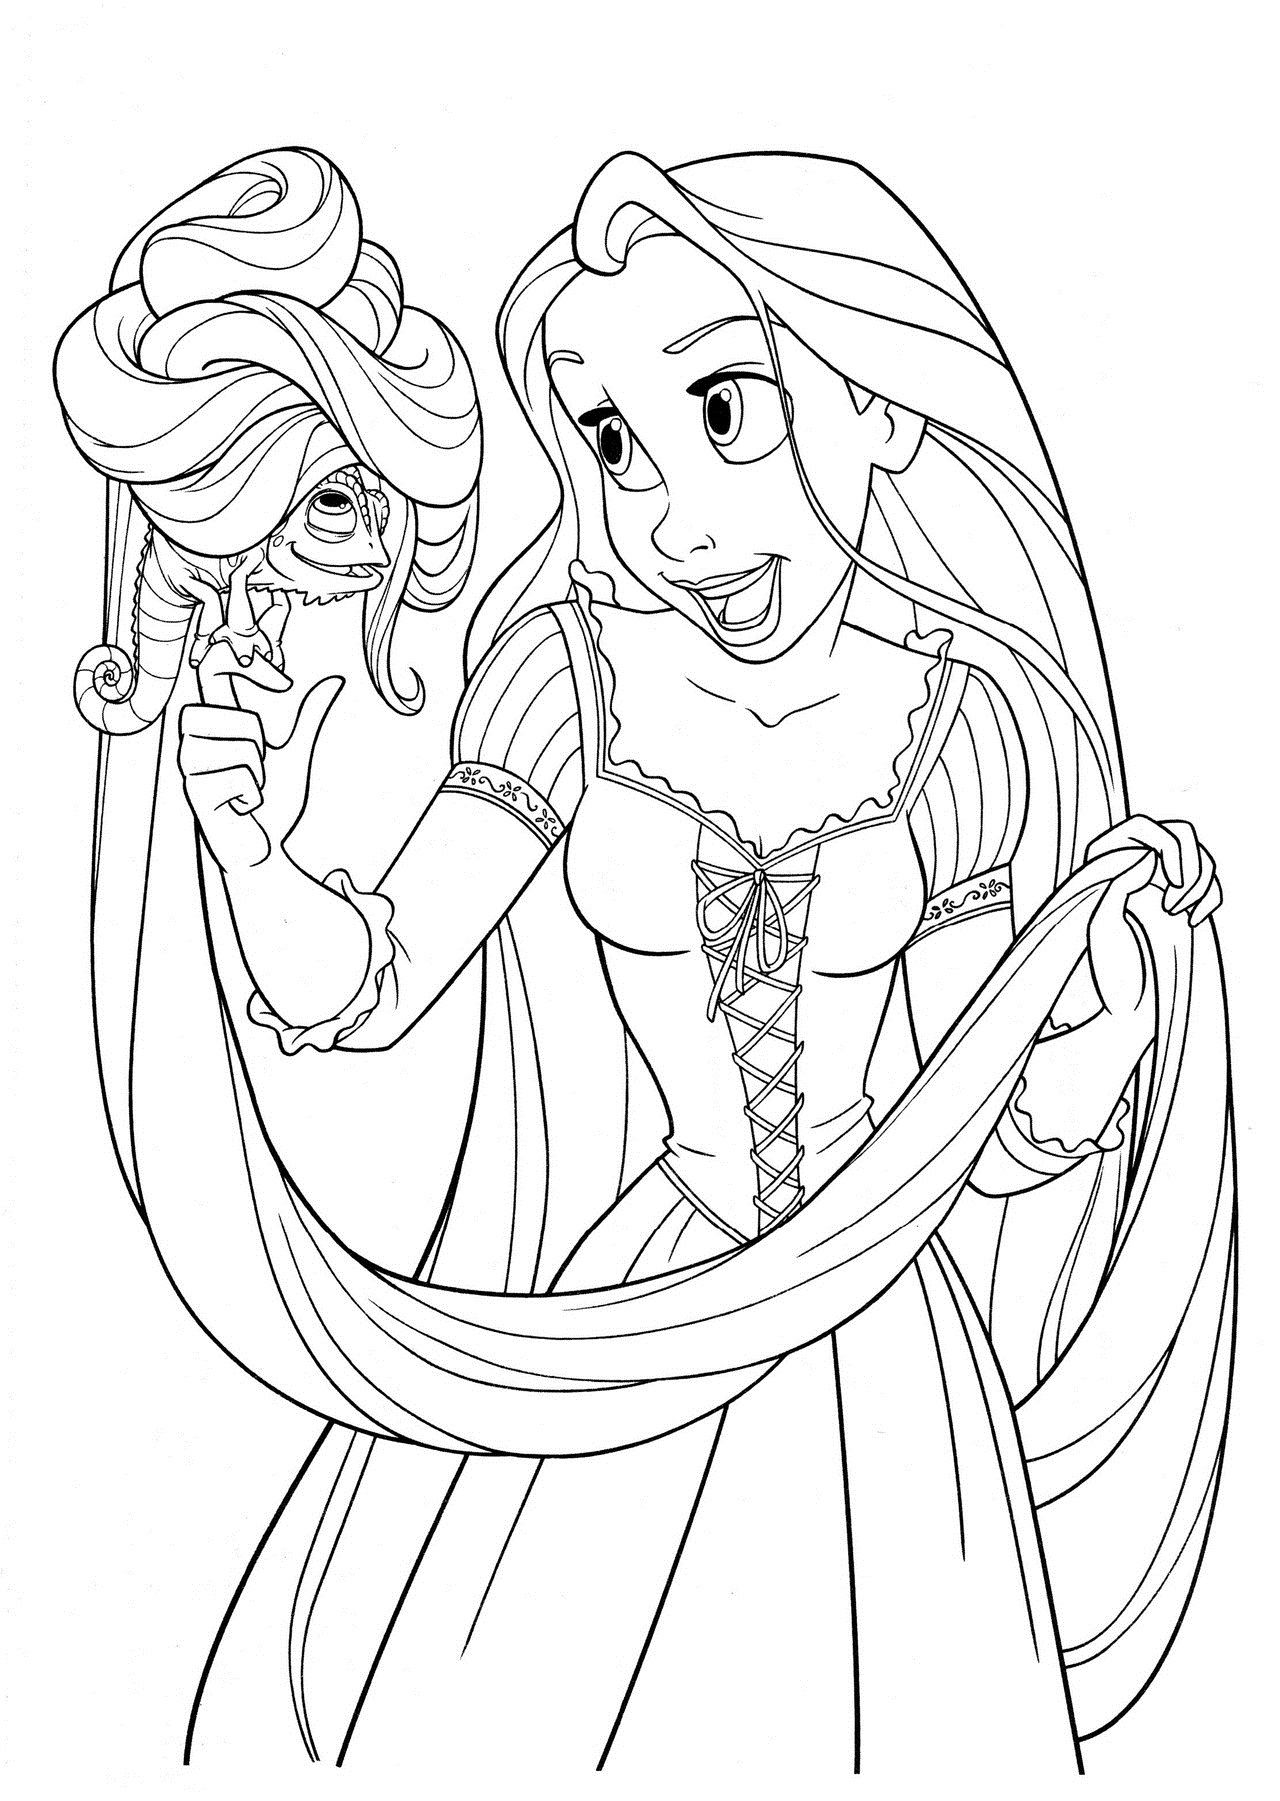 disney tangled coloring pages printable free printable tangled coloring pages for kids - Tangled Coloring Pages Printable